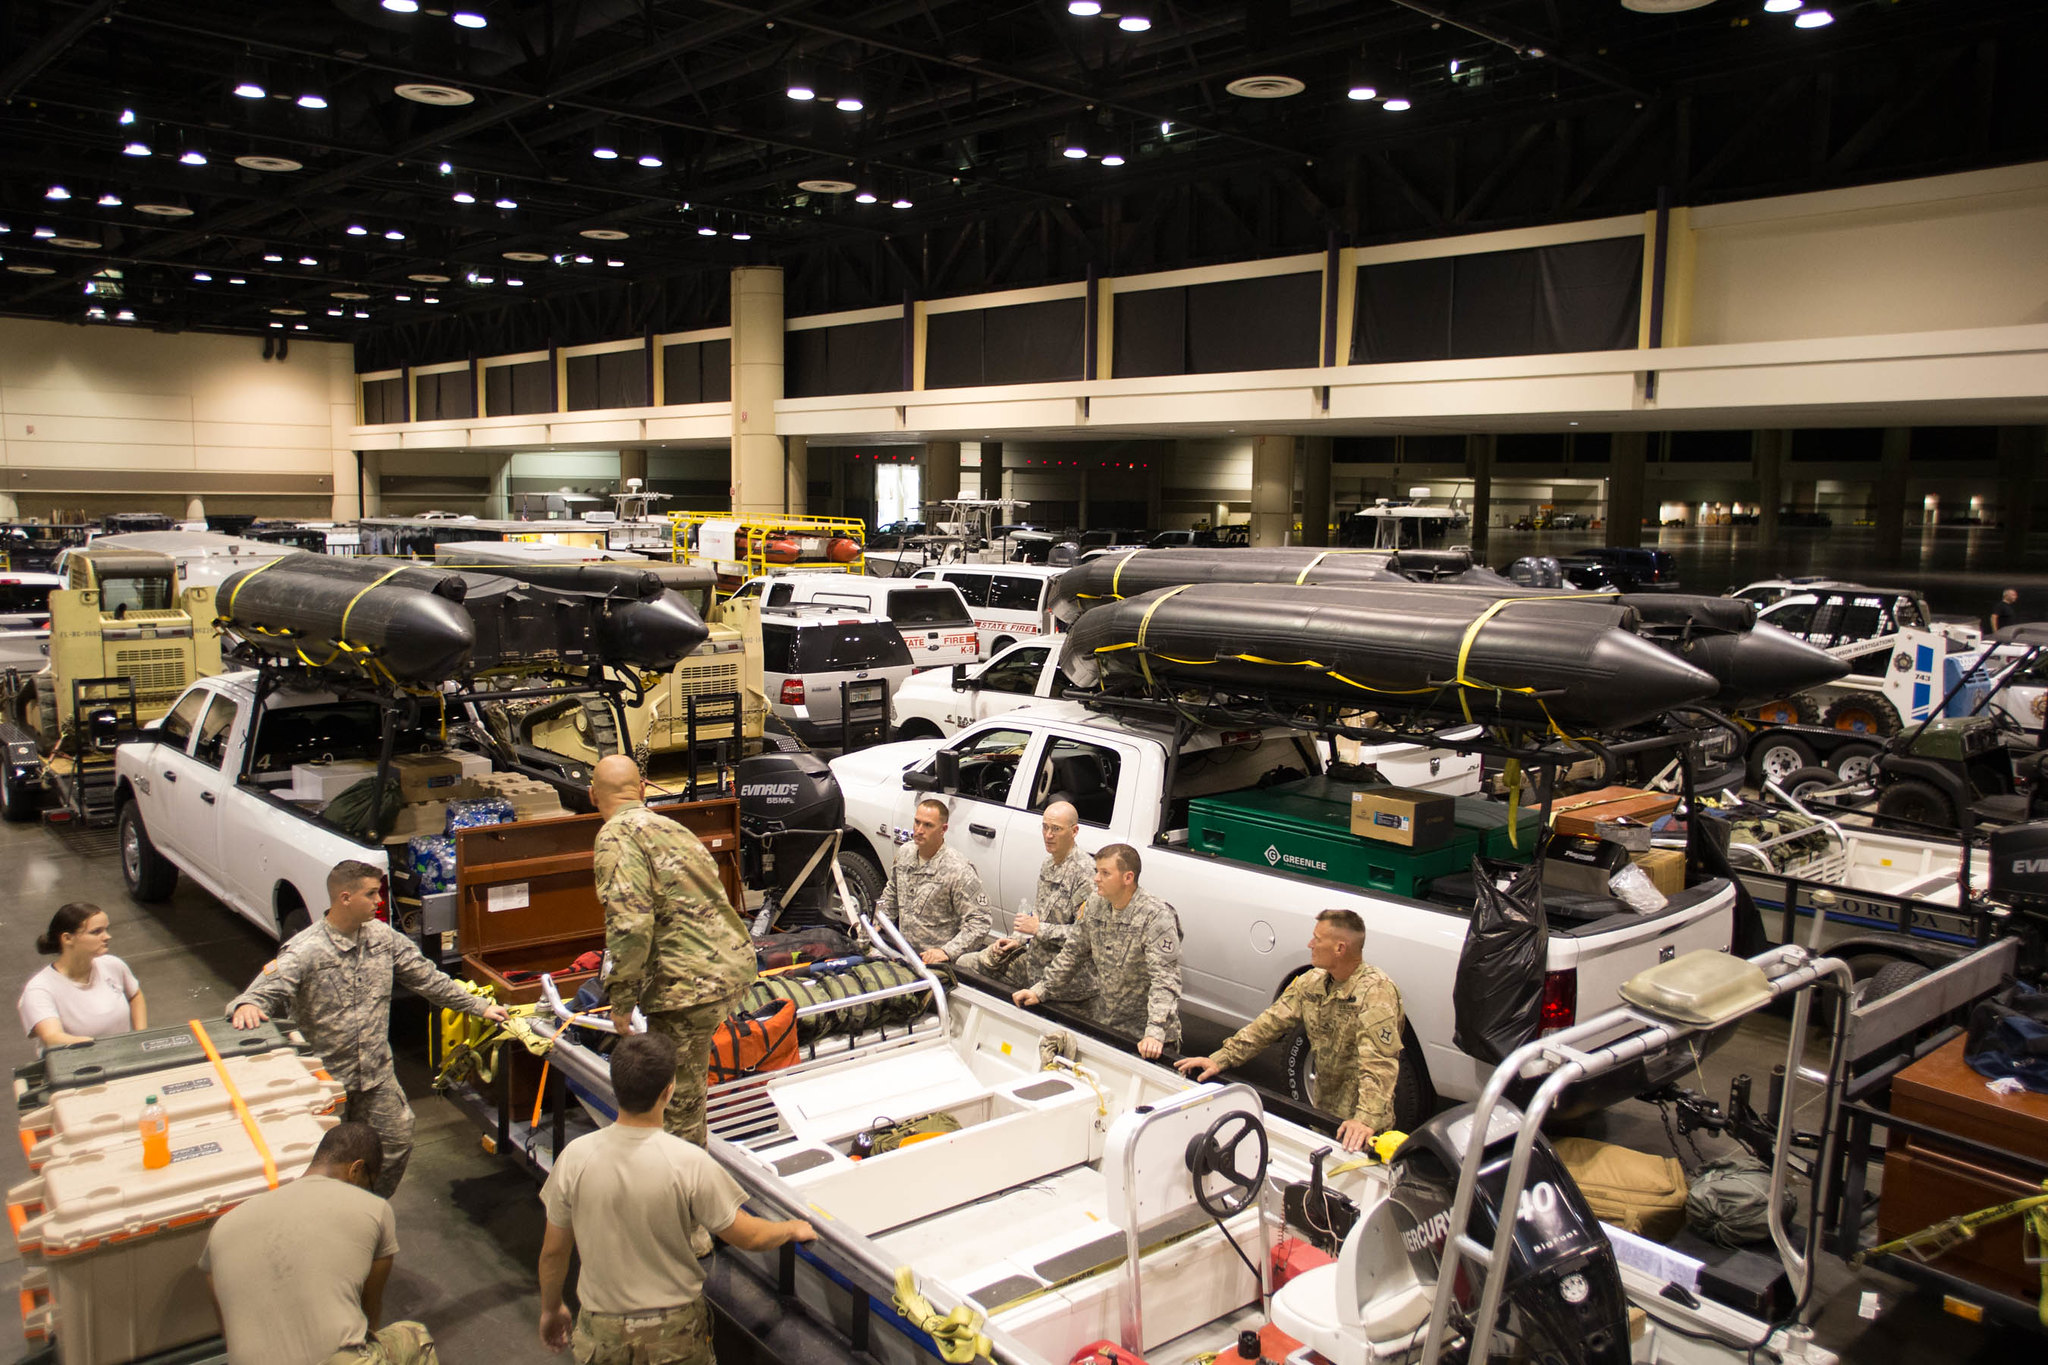 Orange County Convention Center serves as a statewide staging area during Hurricane Irma.